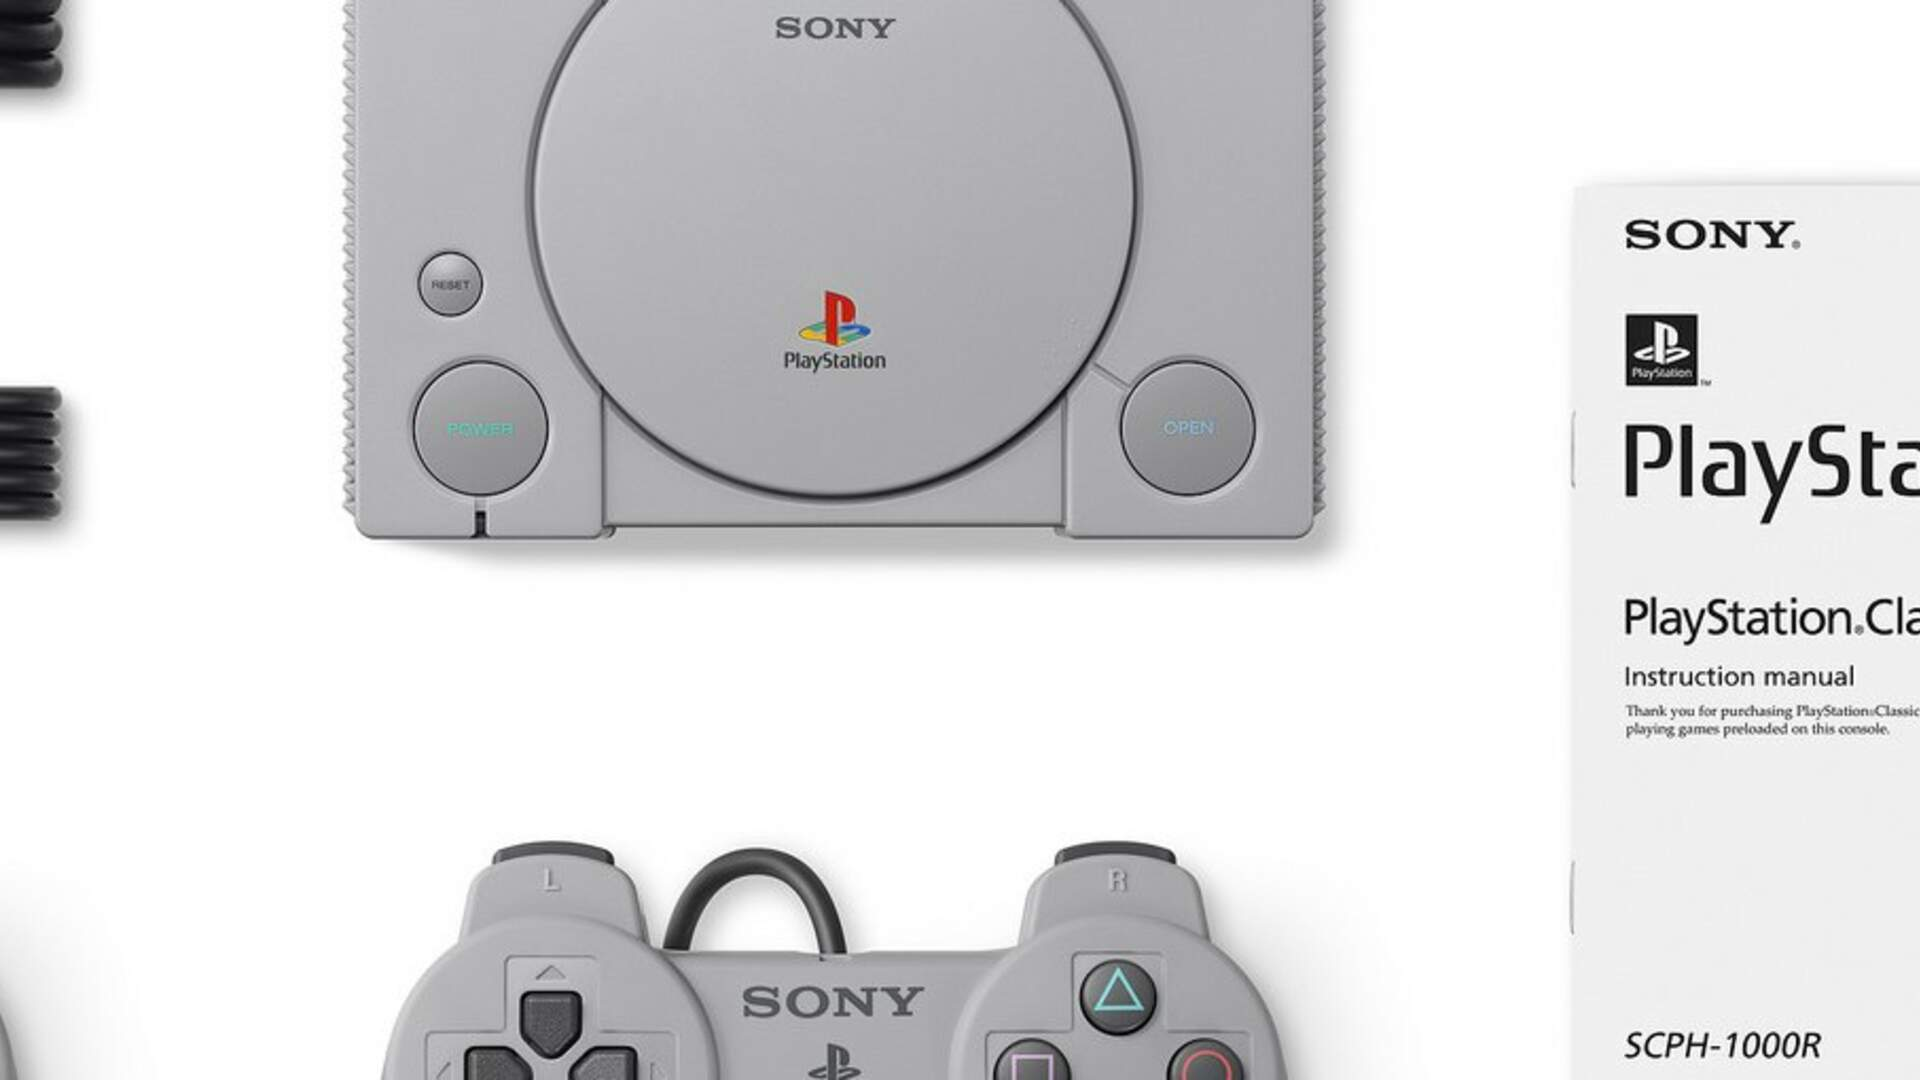 PlayStation Classic Release Date, Price, Full Games List and Japanese List - Pre-Order PlayStation Classic - Everything we Know